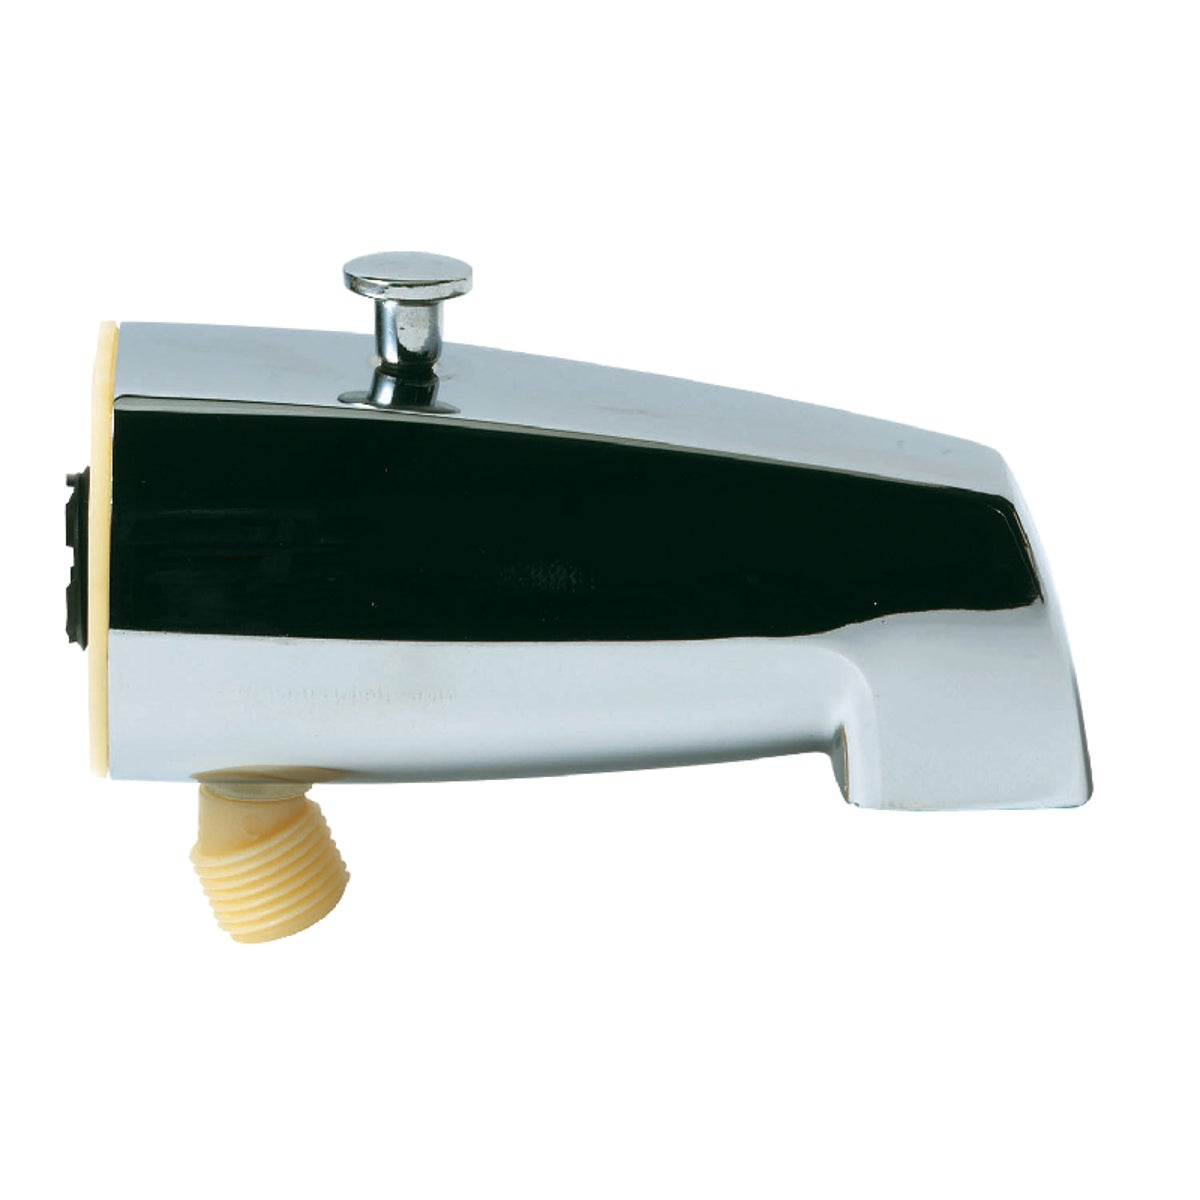 BATH/SHWR DIVERTER SPOUT - 420636 by Do it Best